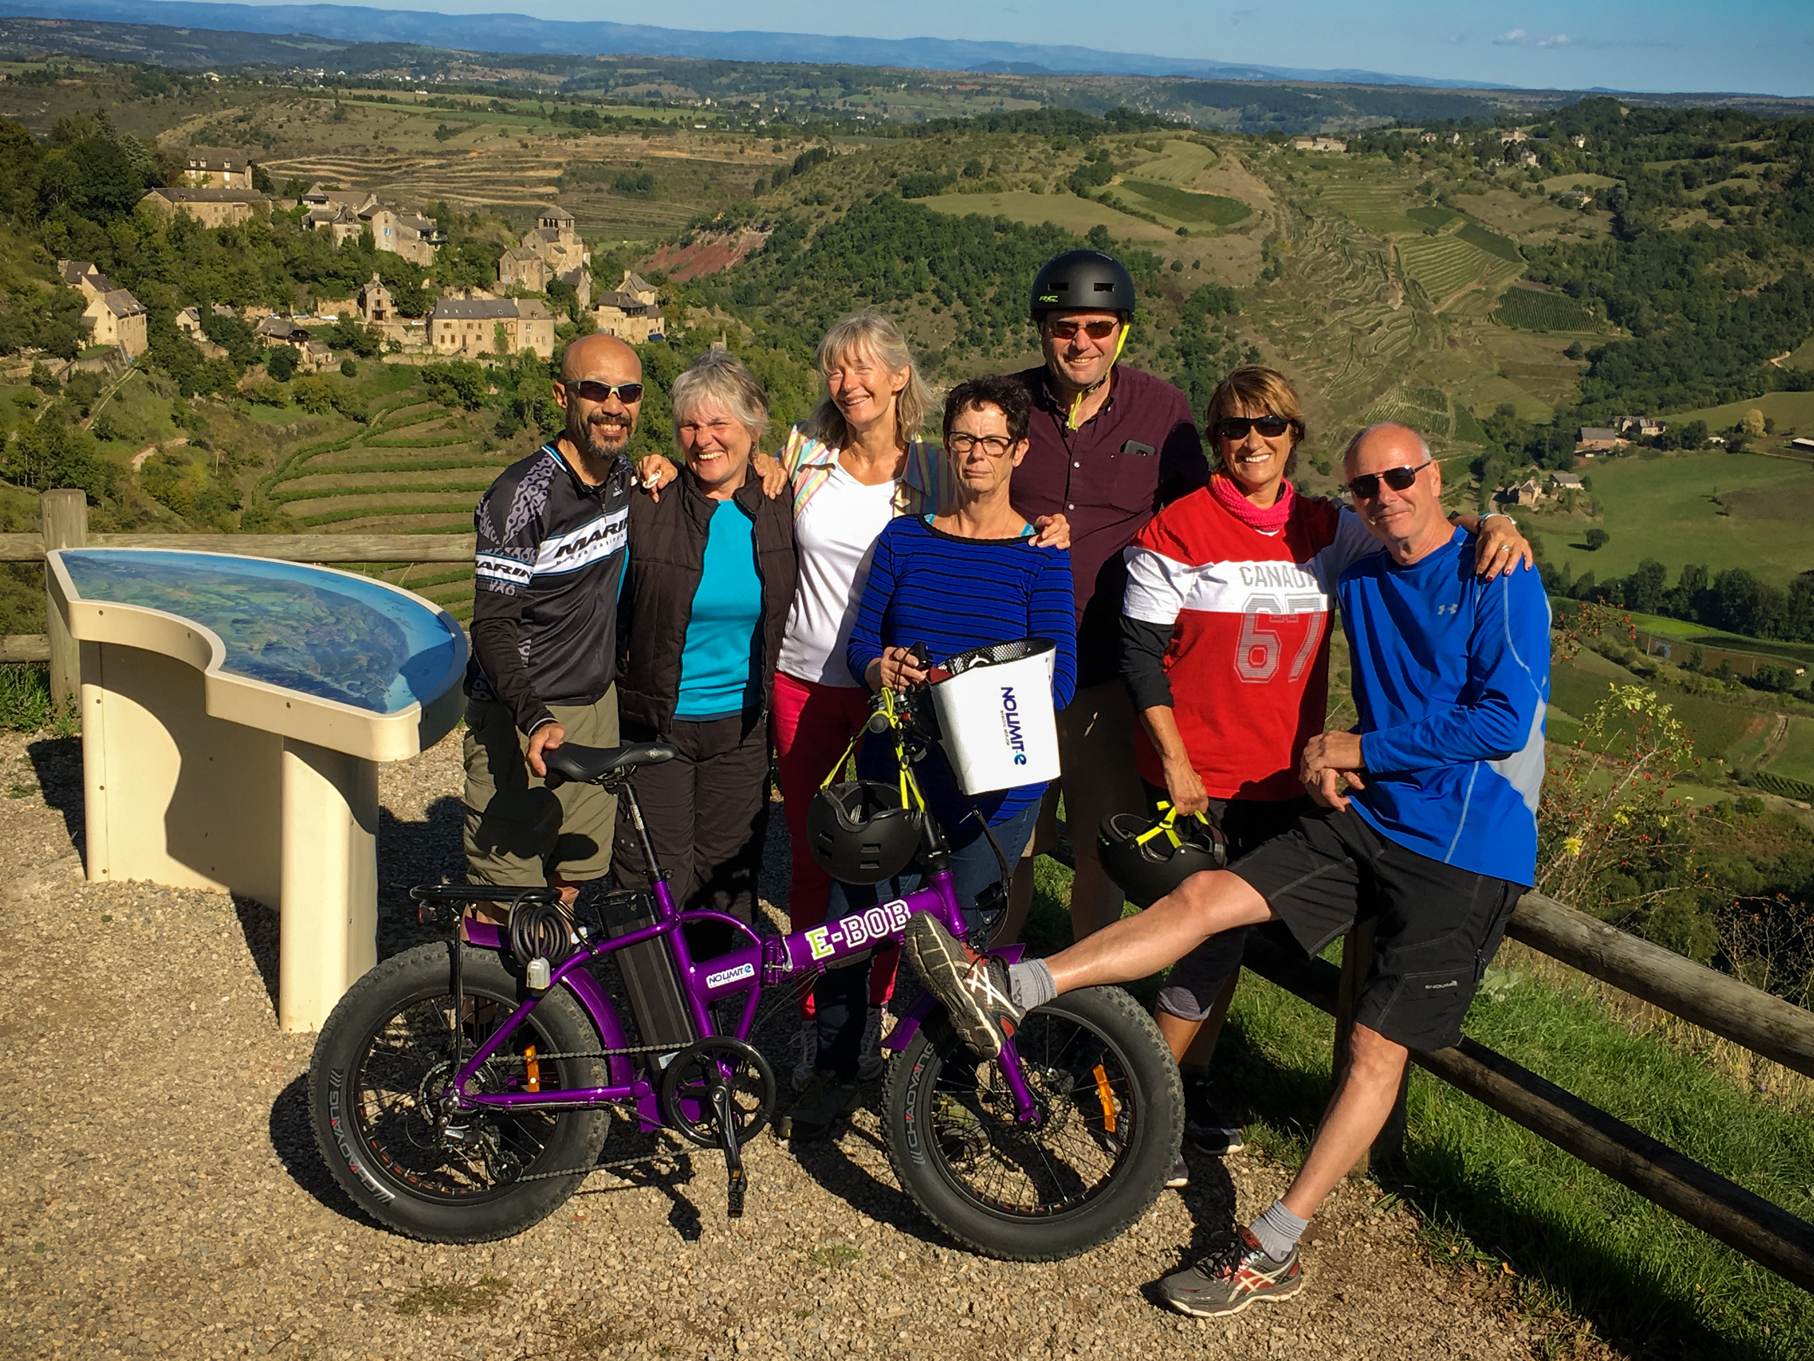 End of September 2017, Véronique (third from the left) guiding and hosting Jack, Nadine, Laura, Dan, Debbie and Ernie (left to right) for a fully customized and private 10-day tour including a full day of biking around Rodez, a day kayaking along the Tarn River with a stop for picnic and wine, another day of wine tasting and visits of three wine domains in the area among other planned activities.